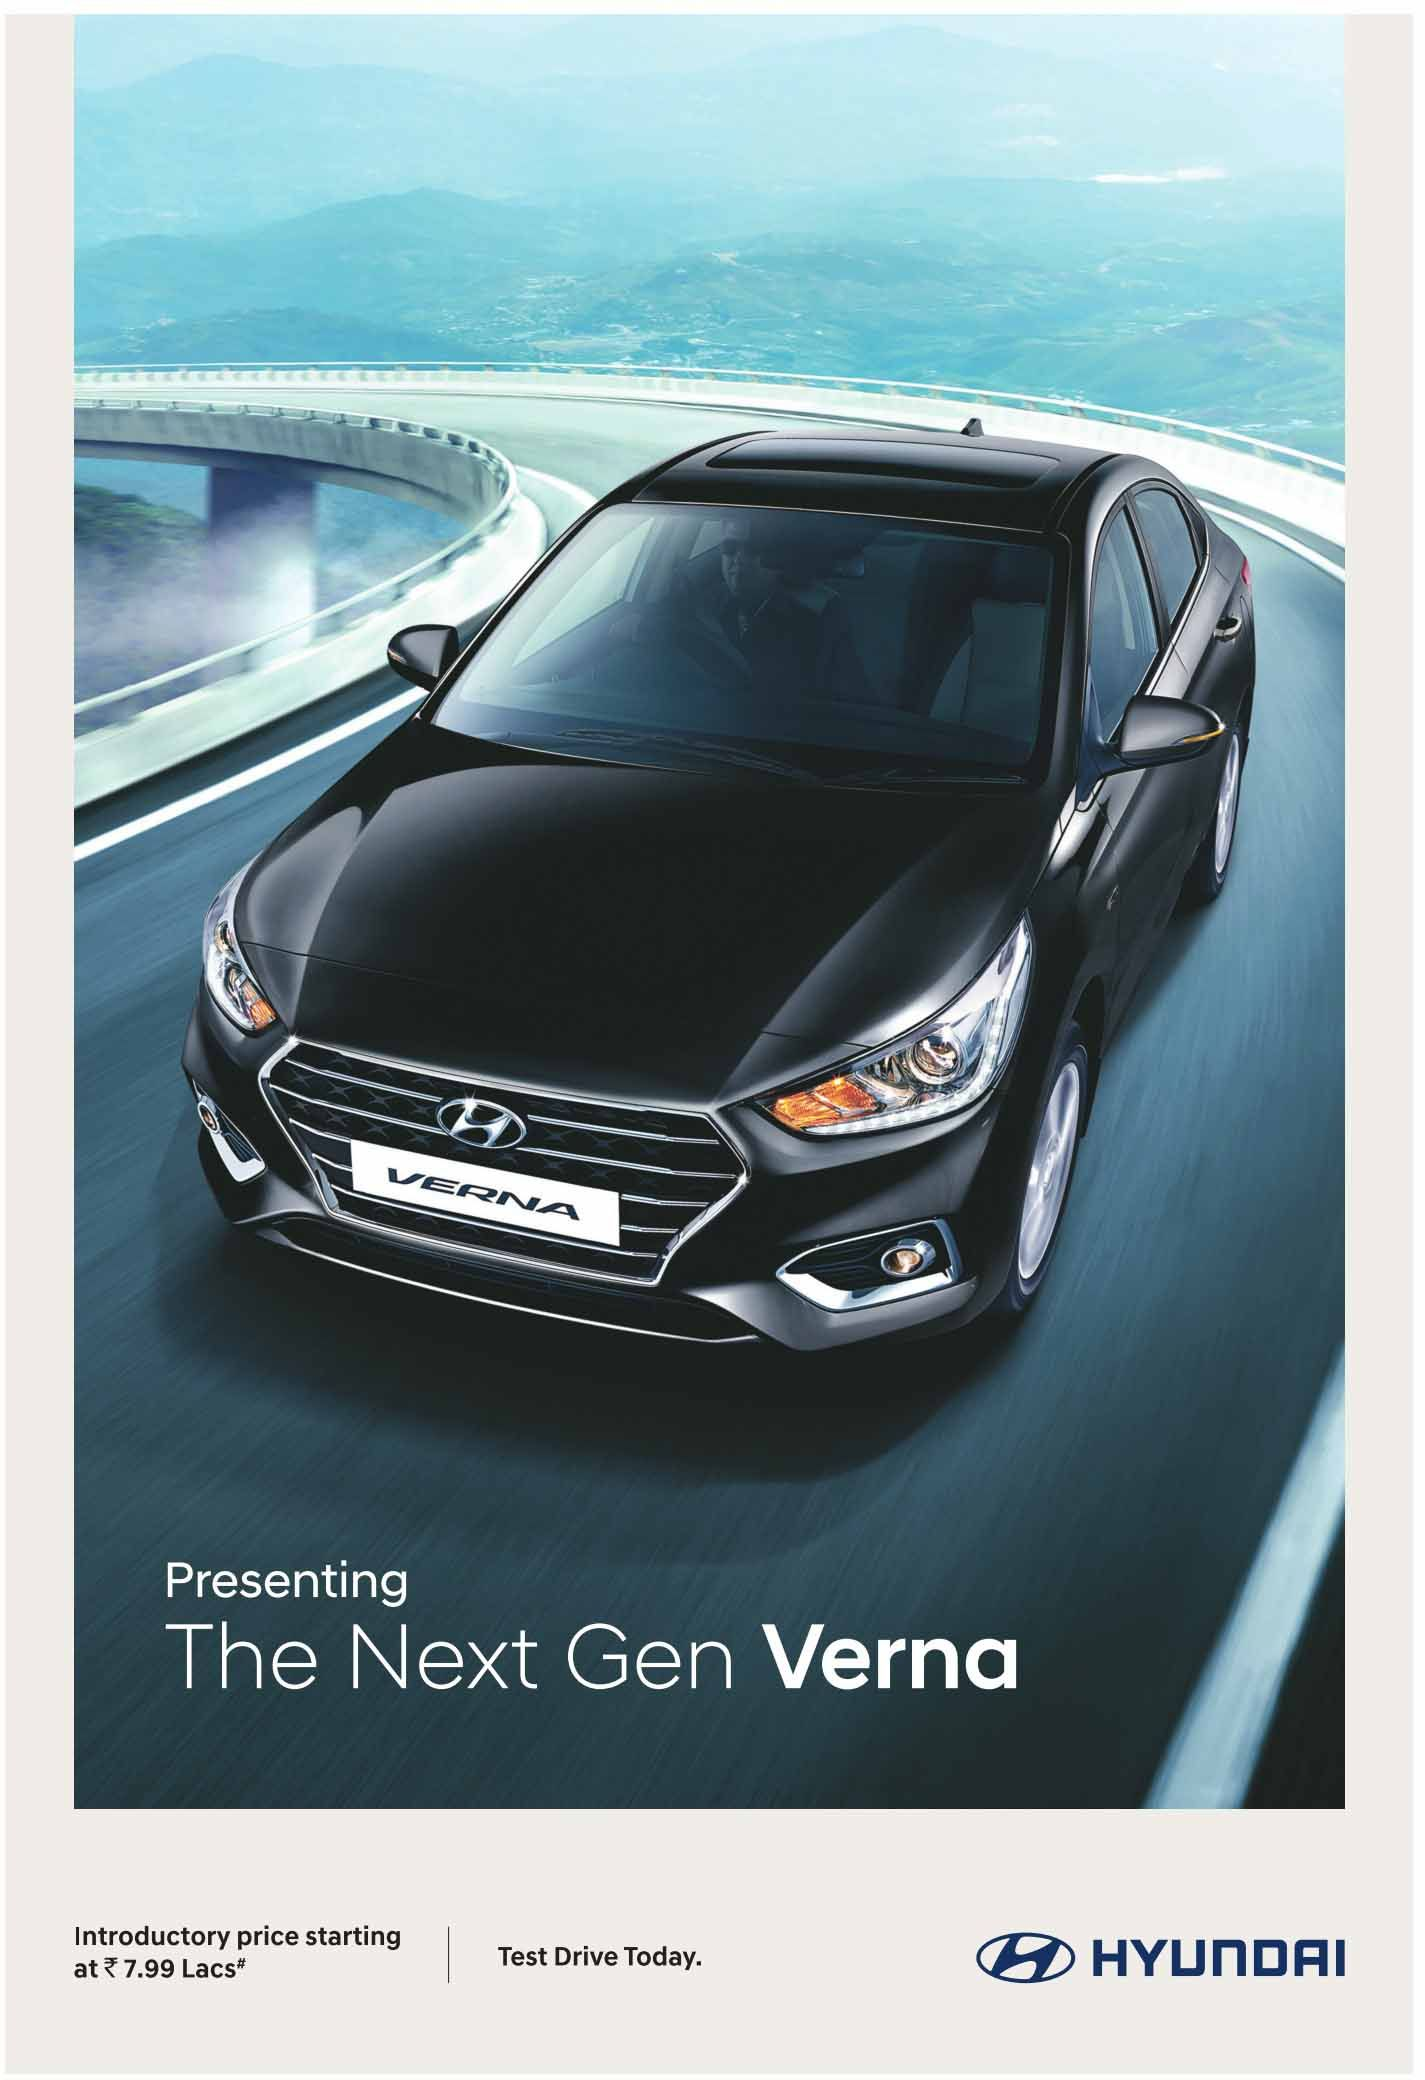 Next Gen Hyundai Verna Launched In India Price Starting At Rs 7 99 Lakhs Hyundai Hyundai Cars